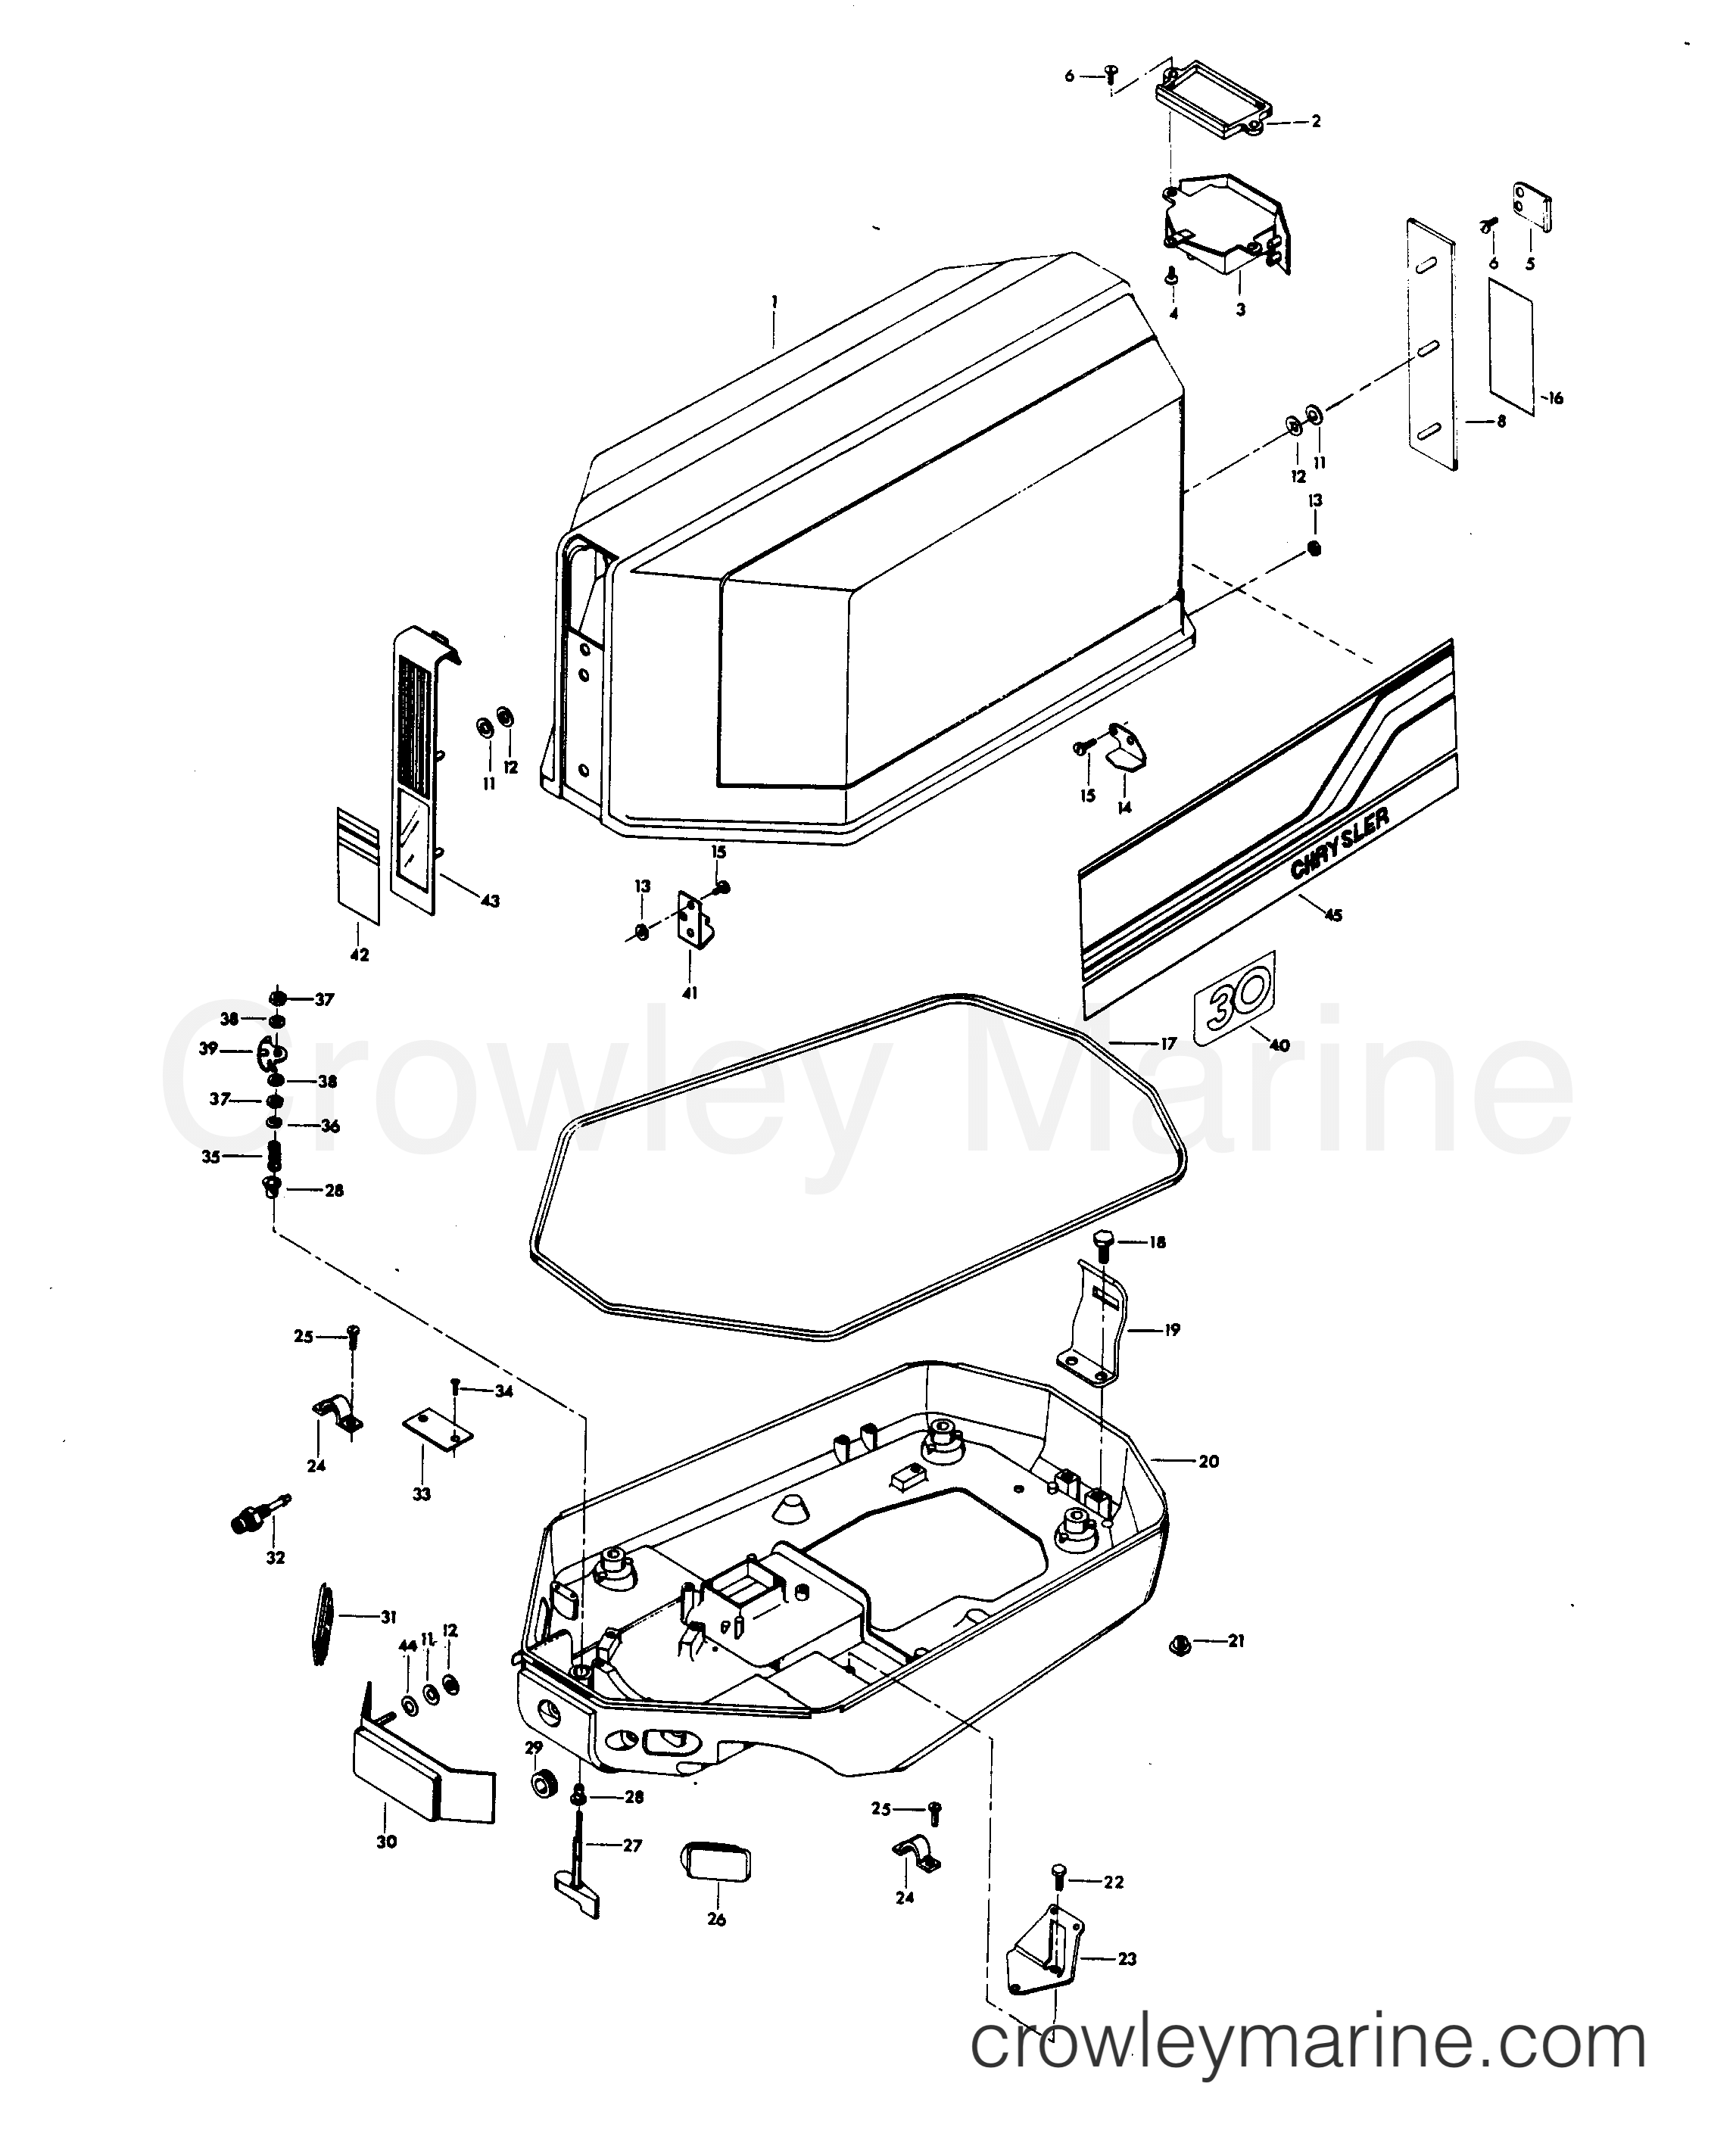 1980 Chrysler Outboard 30 - 307B0C ENGINE COVER AND SUPPORT PLATE (ALTERNATOR MODELS) section